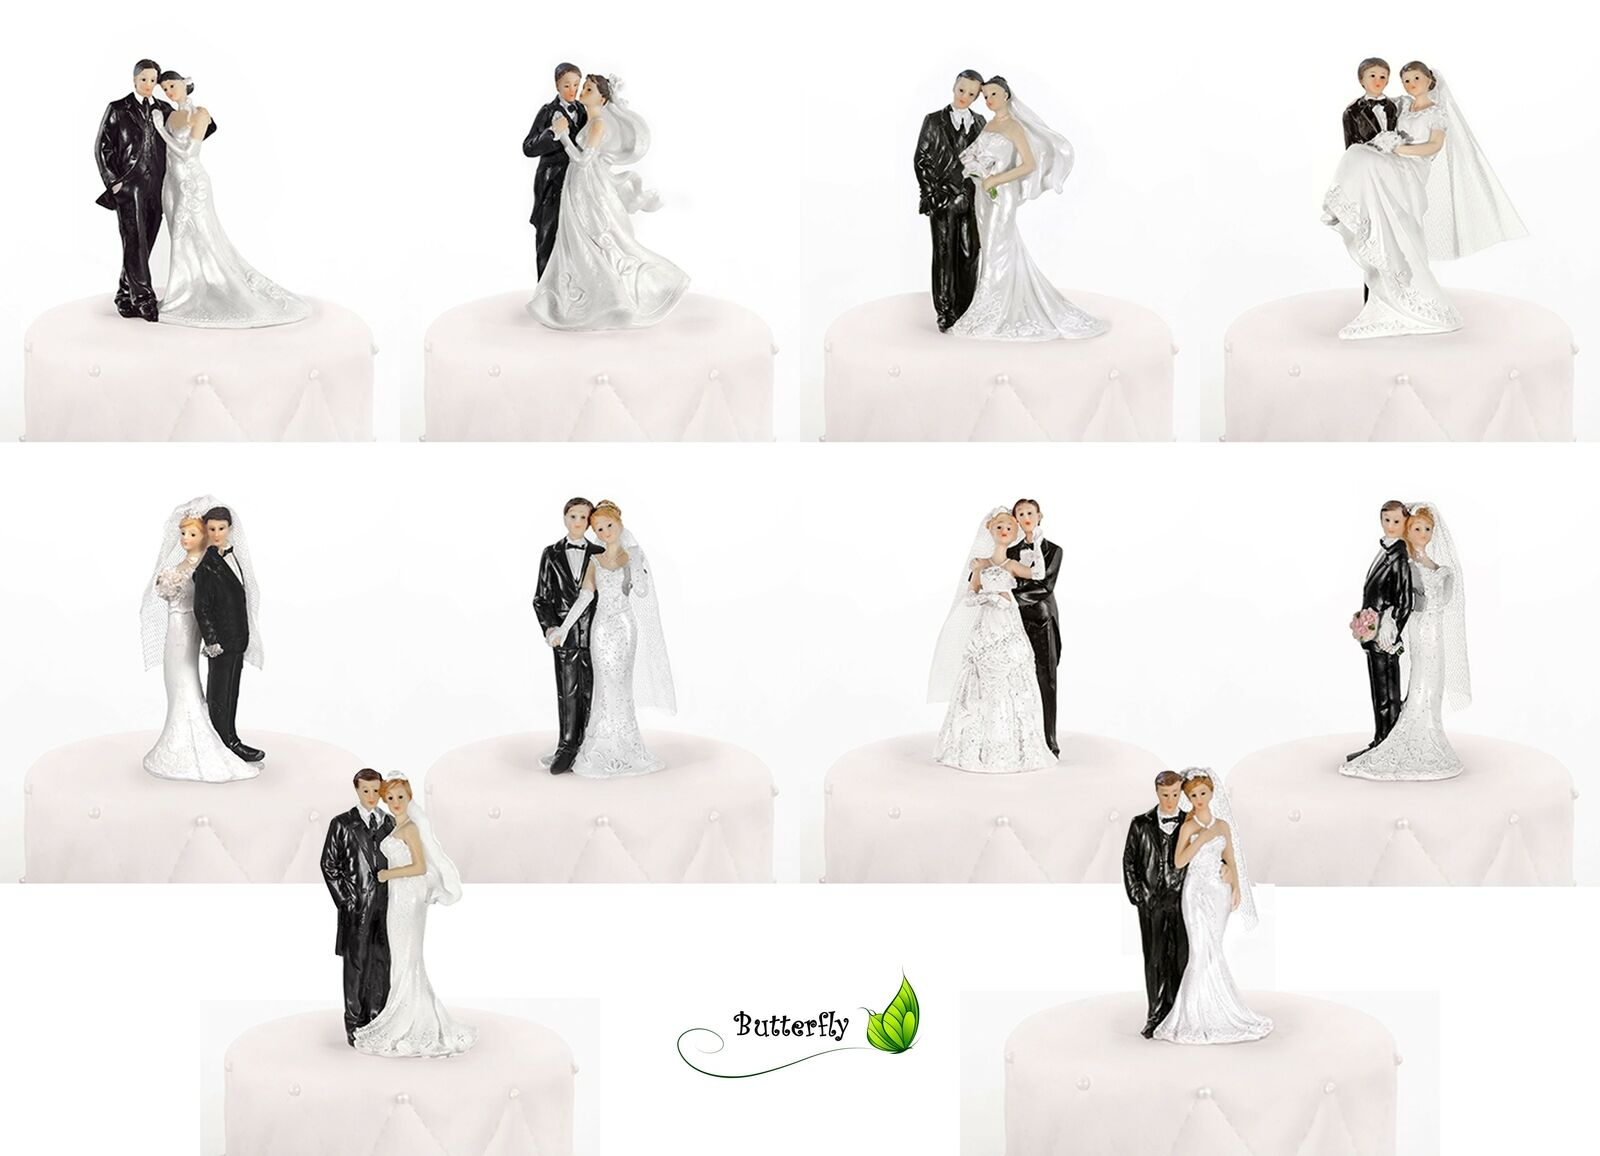 brautpaar 11cm figur tortenaufsatz hochzeit. Black Bedroom Furniture Sets. Home Design Ideas